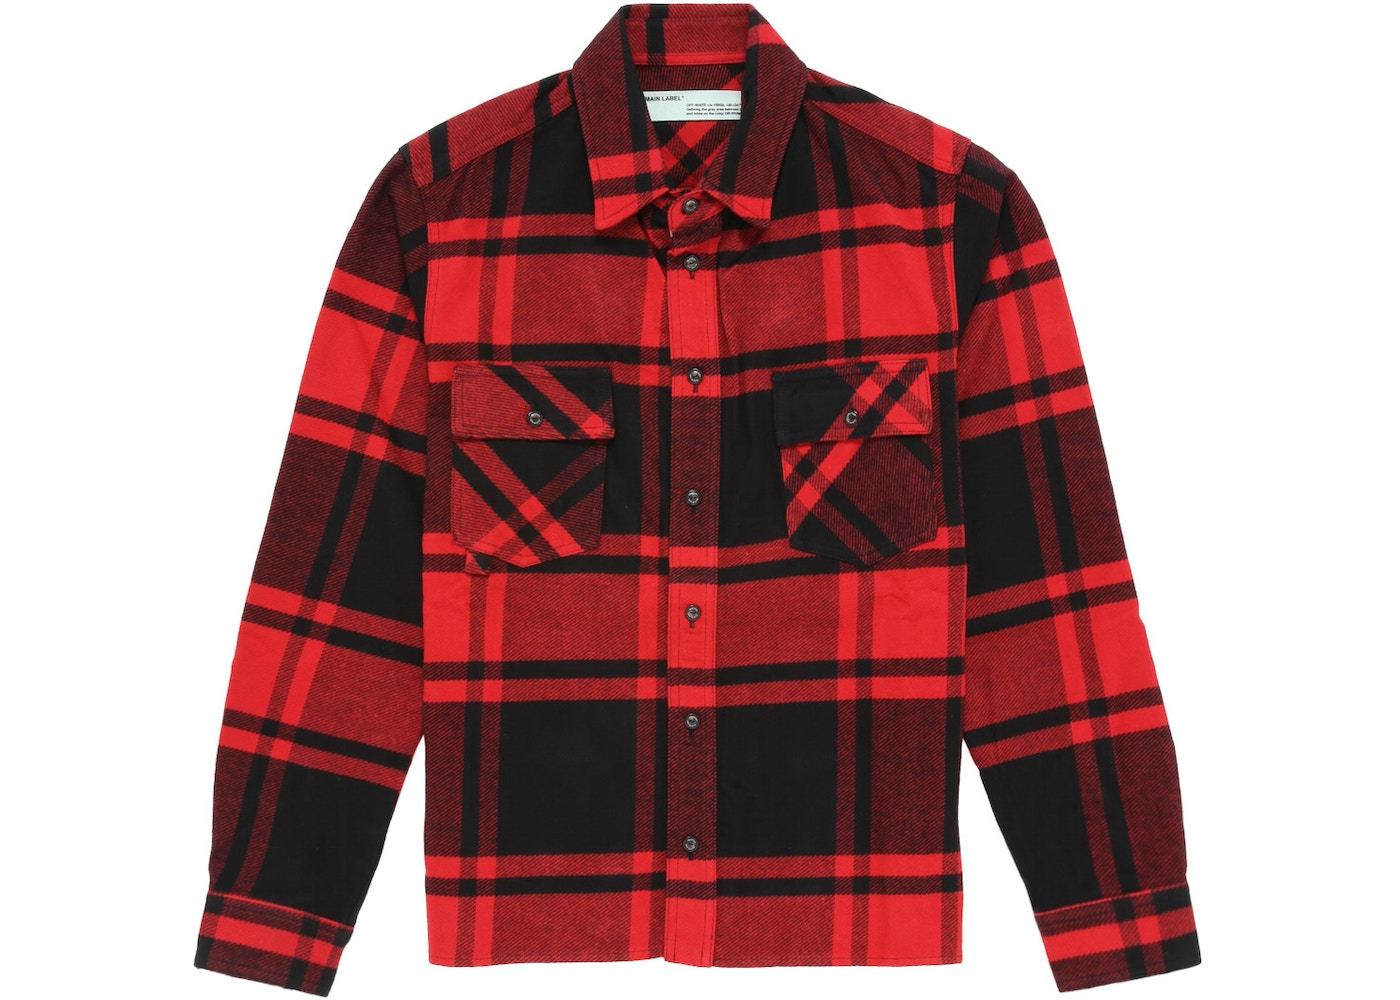 0ef48f13 OFF-WHITE Logo Print Checkered Flannel Overshirt Red/Black - SS19